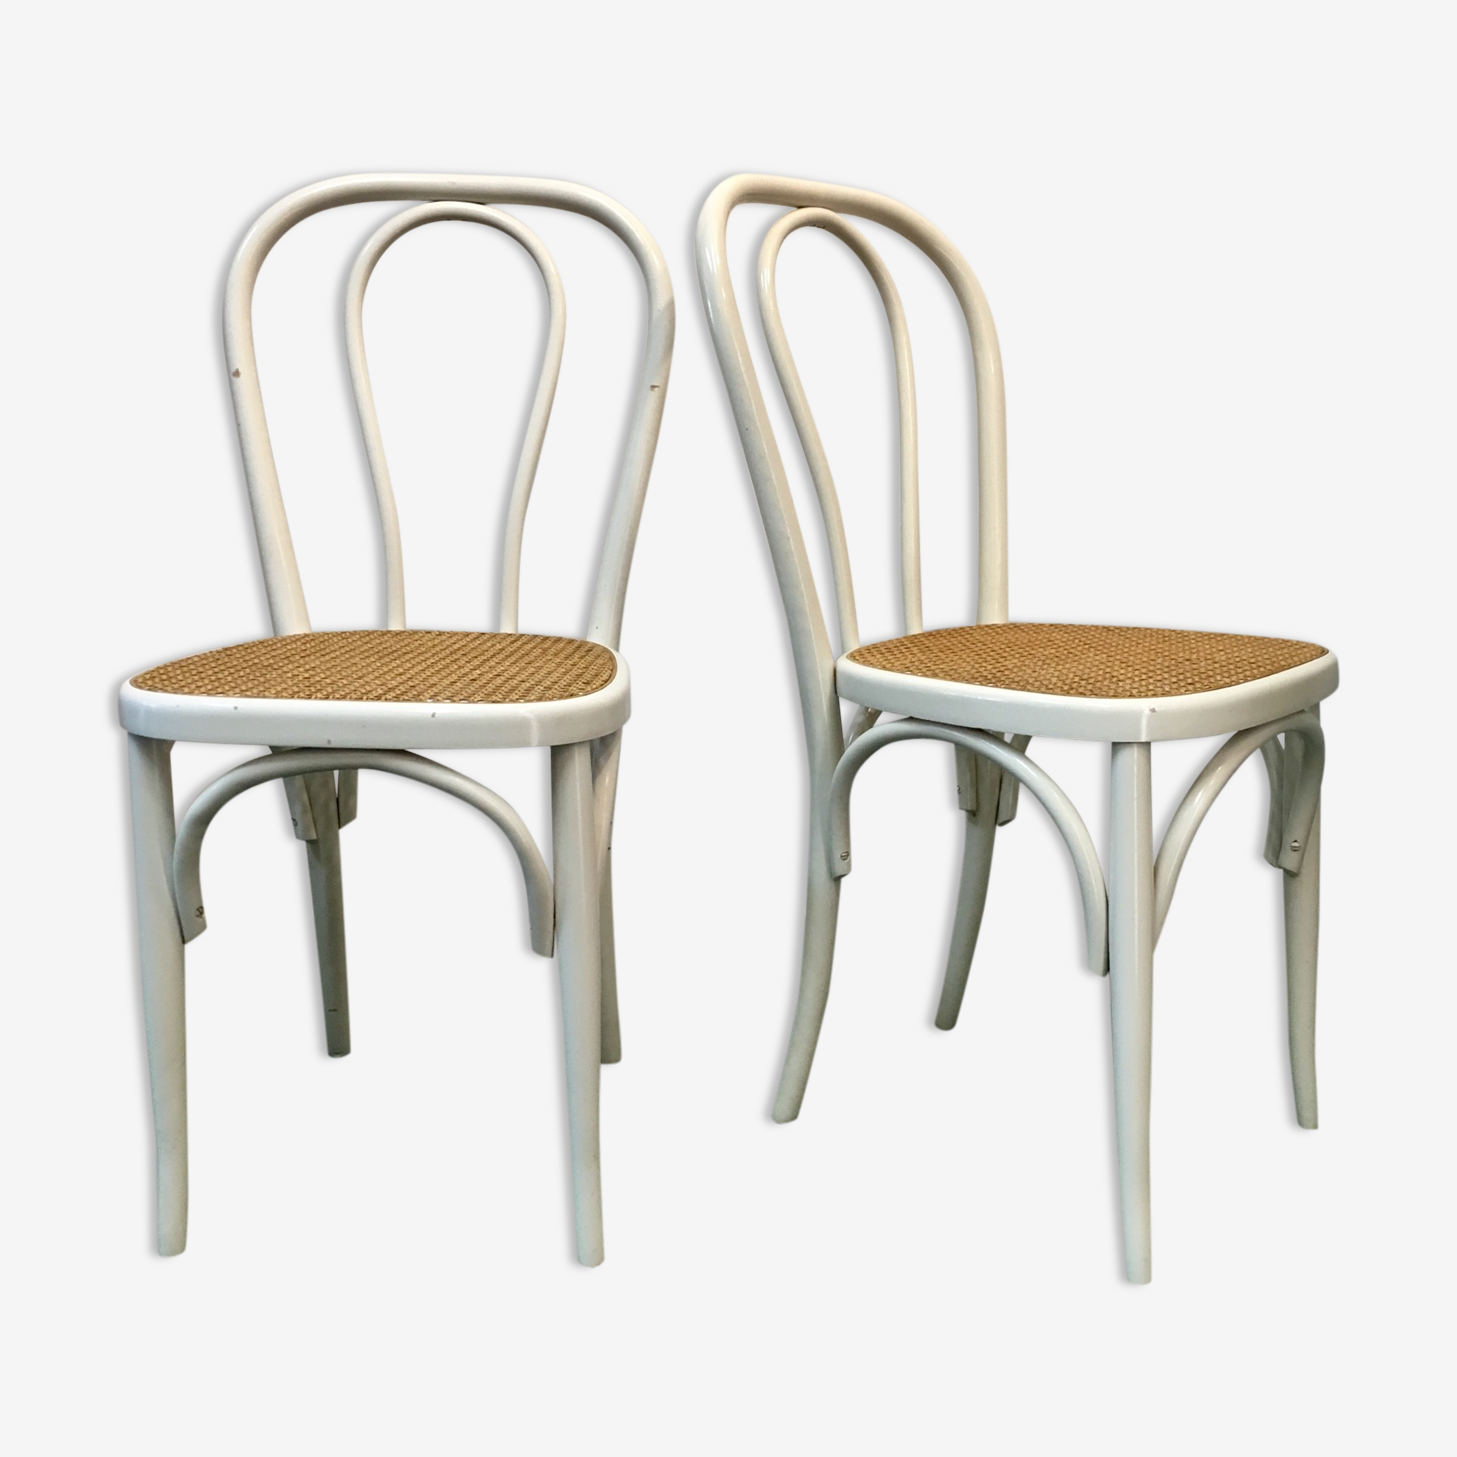 Pair of chairs bistro cane